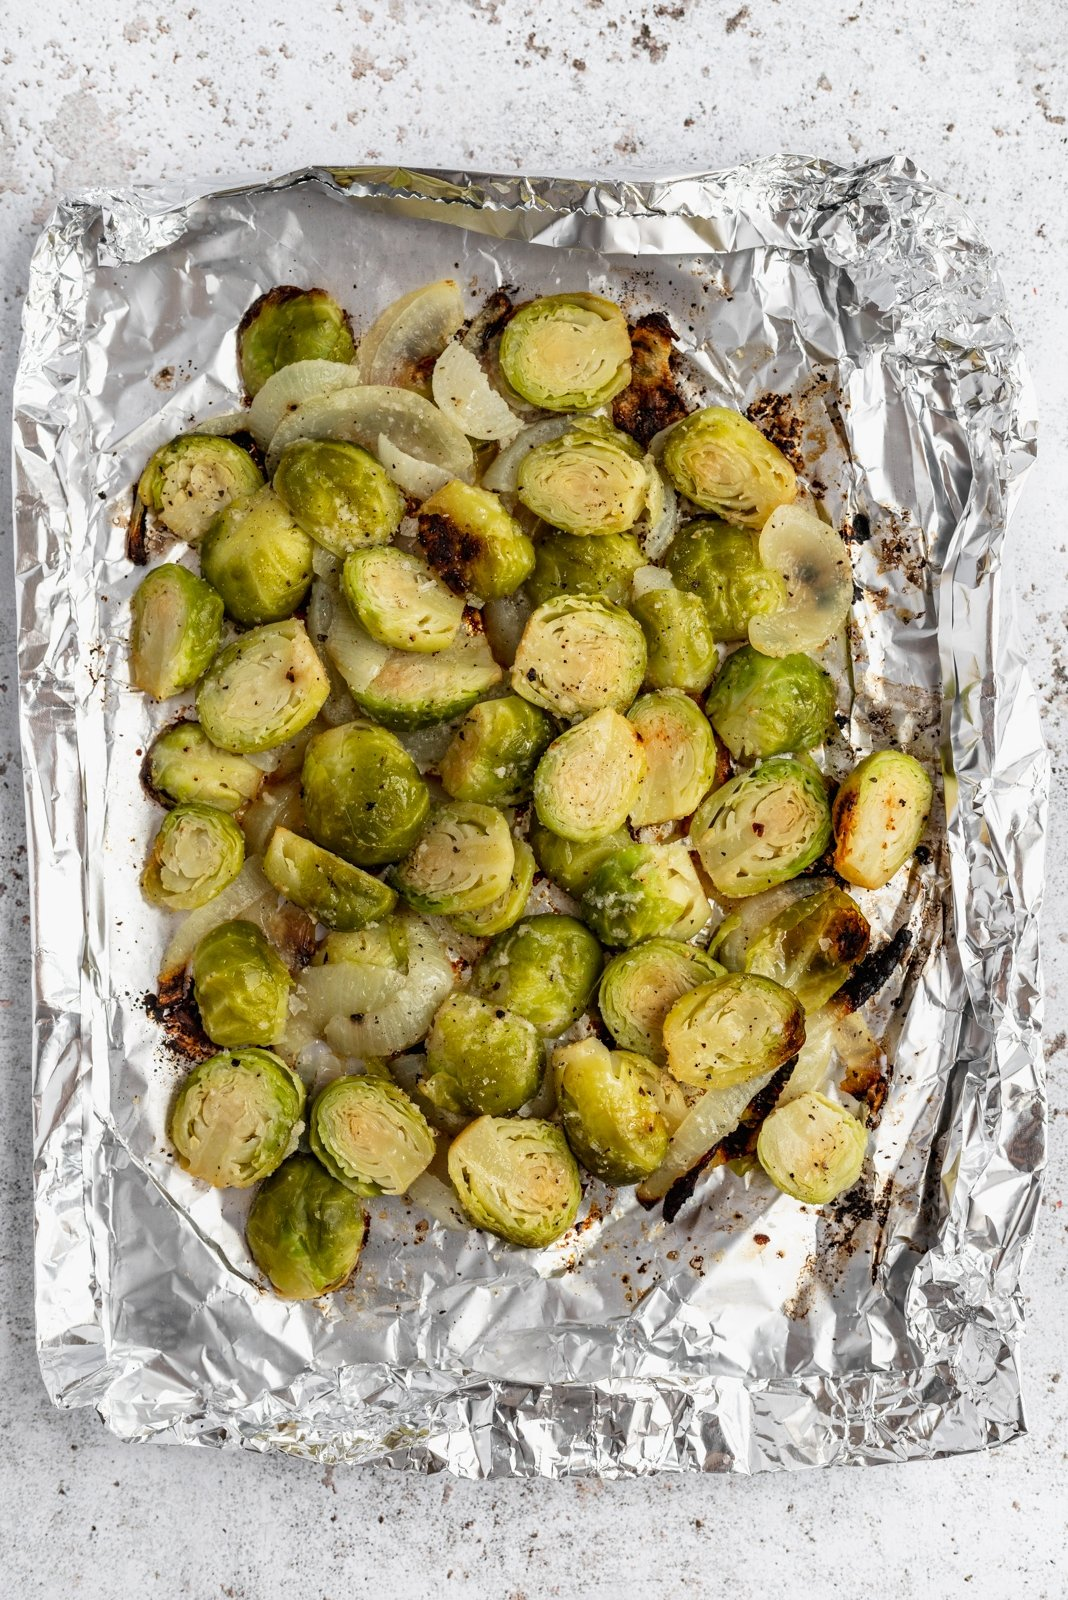 grilled brussels sprouts in a foil pack